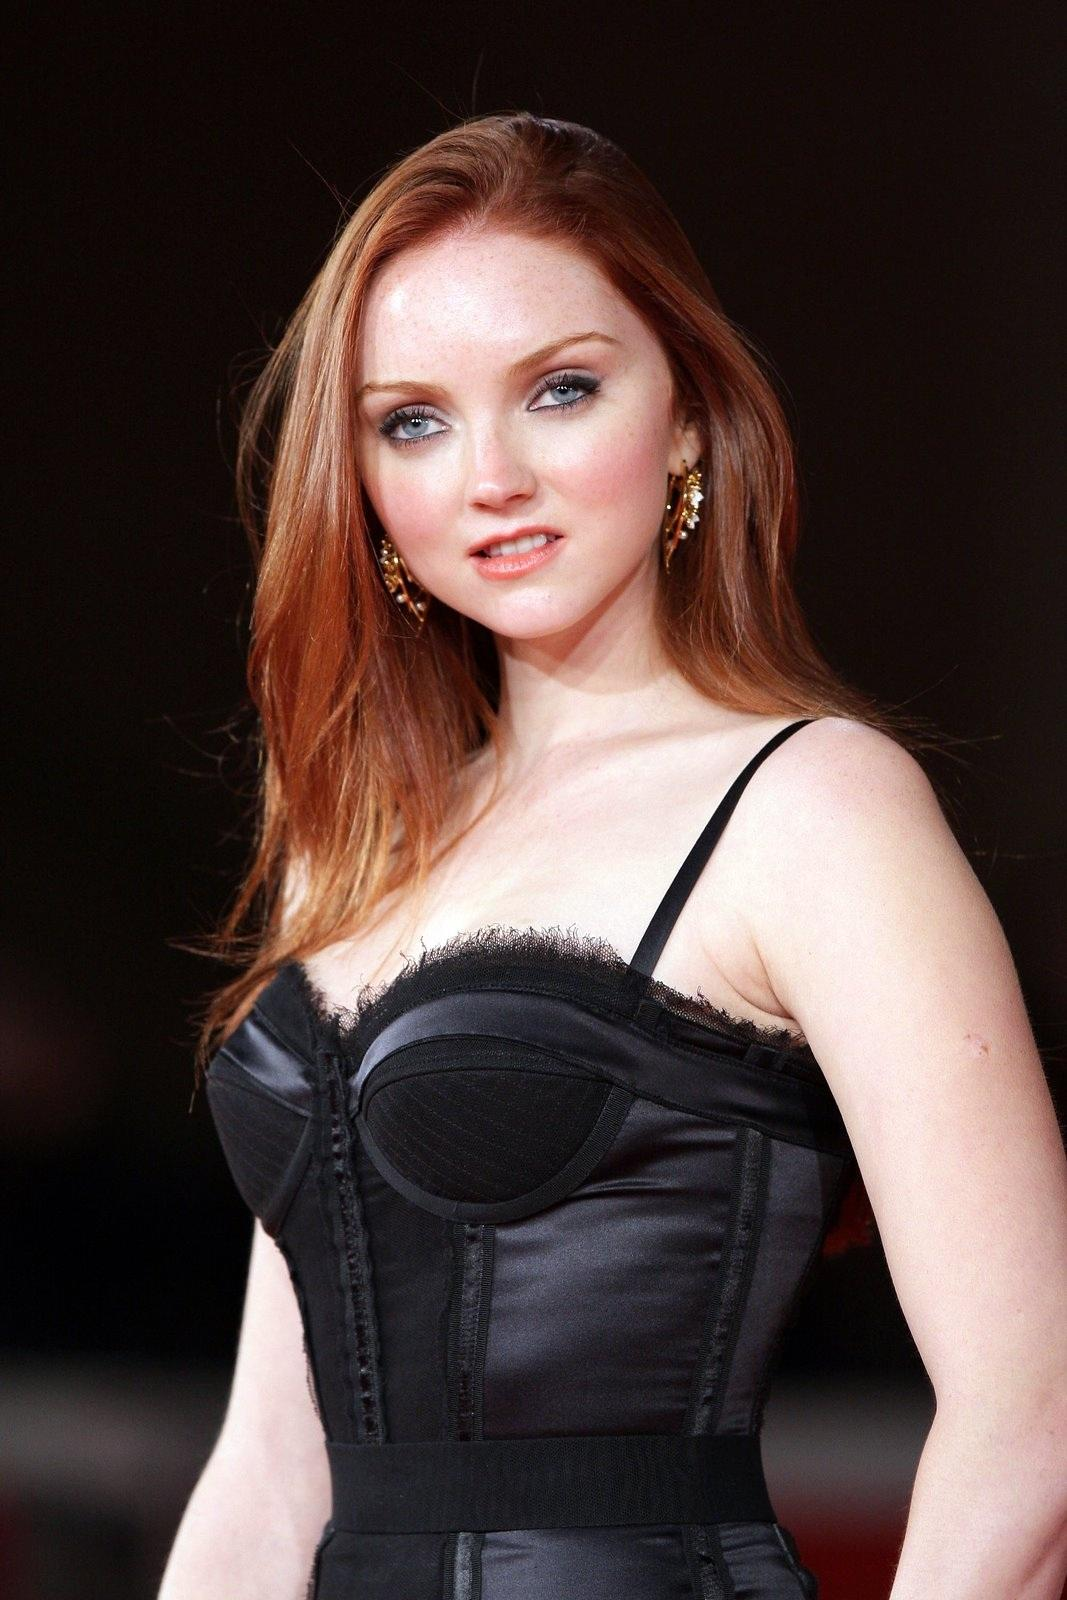 lily-cole1.jpg